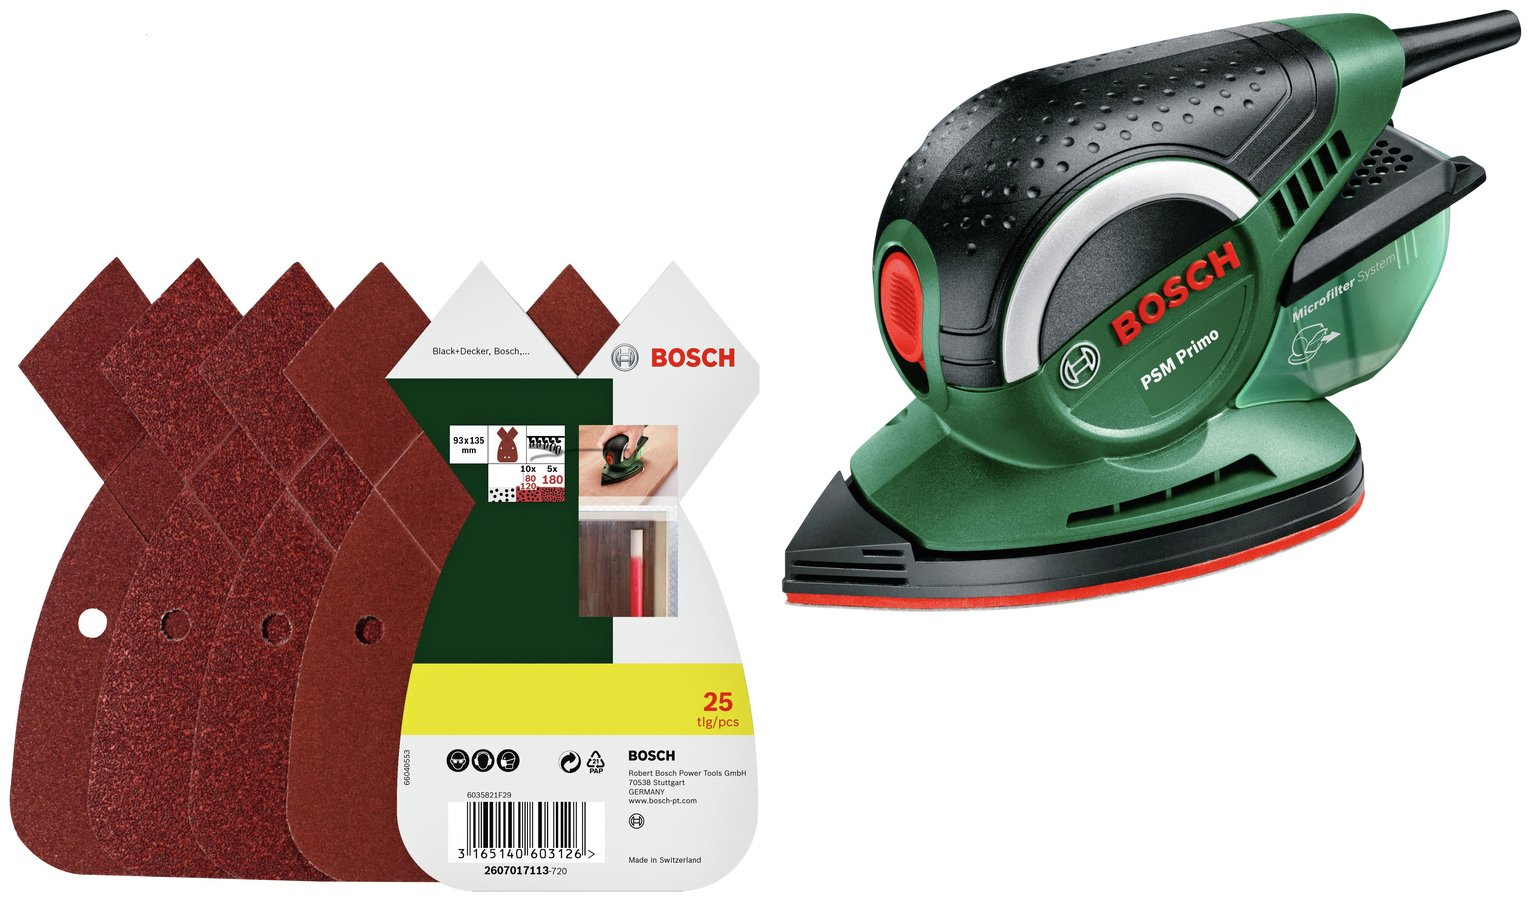 Bosch PSM Primo Detail Sander with 25 Sheets from Bosch